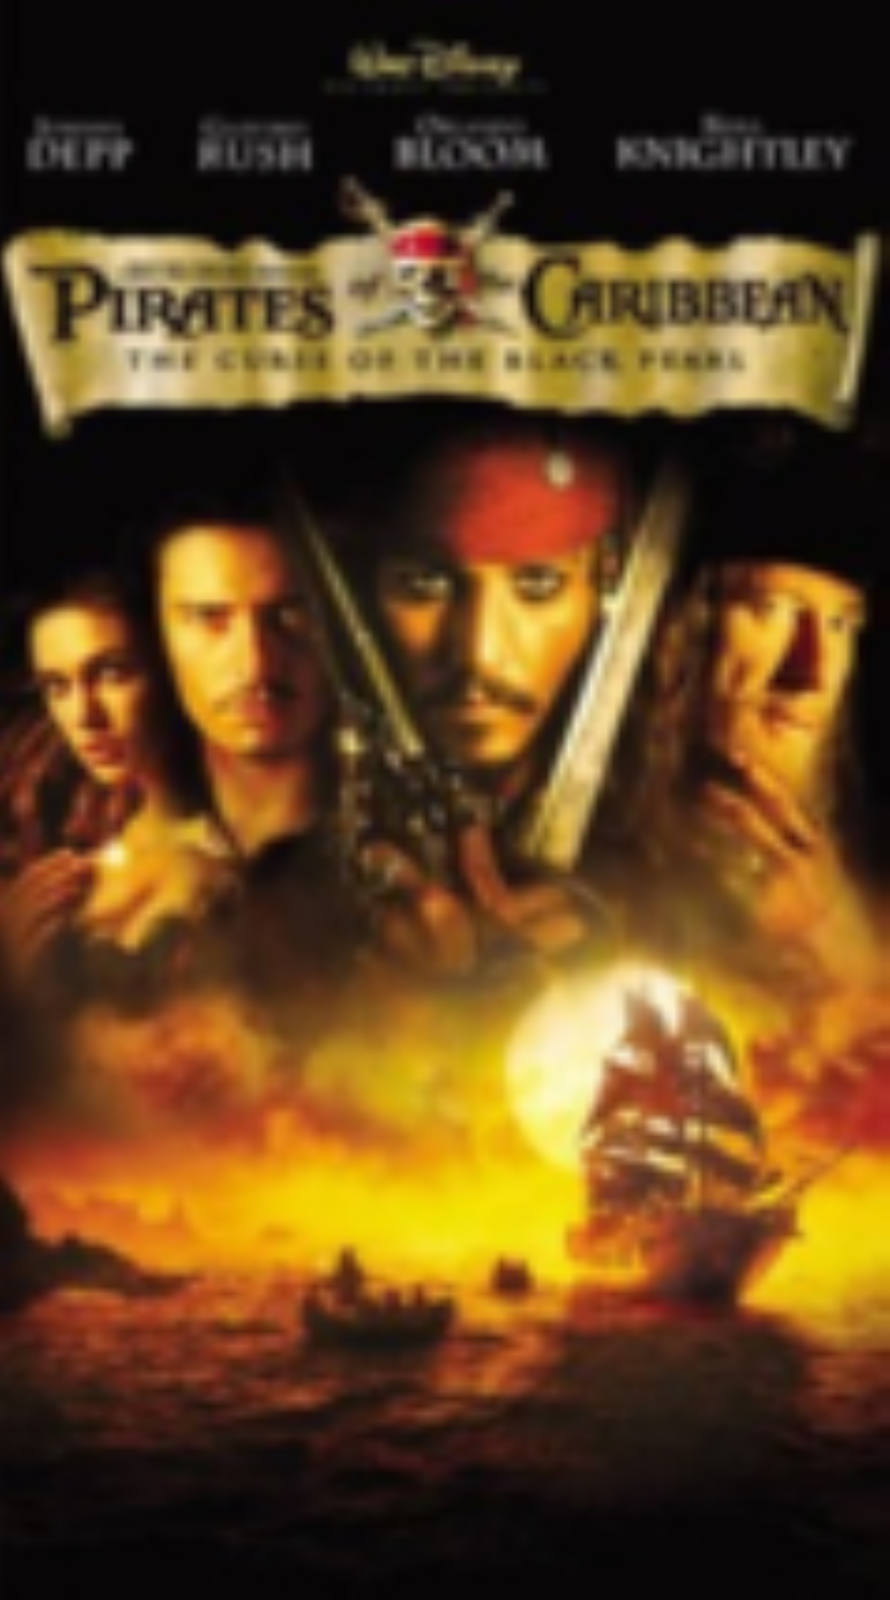 Pirates of the Caribbean - The Curse of the Black Pearl Vhs